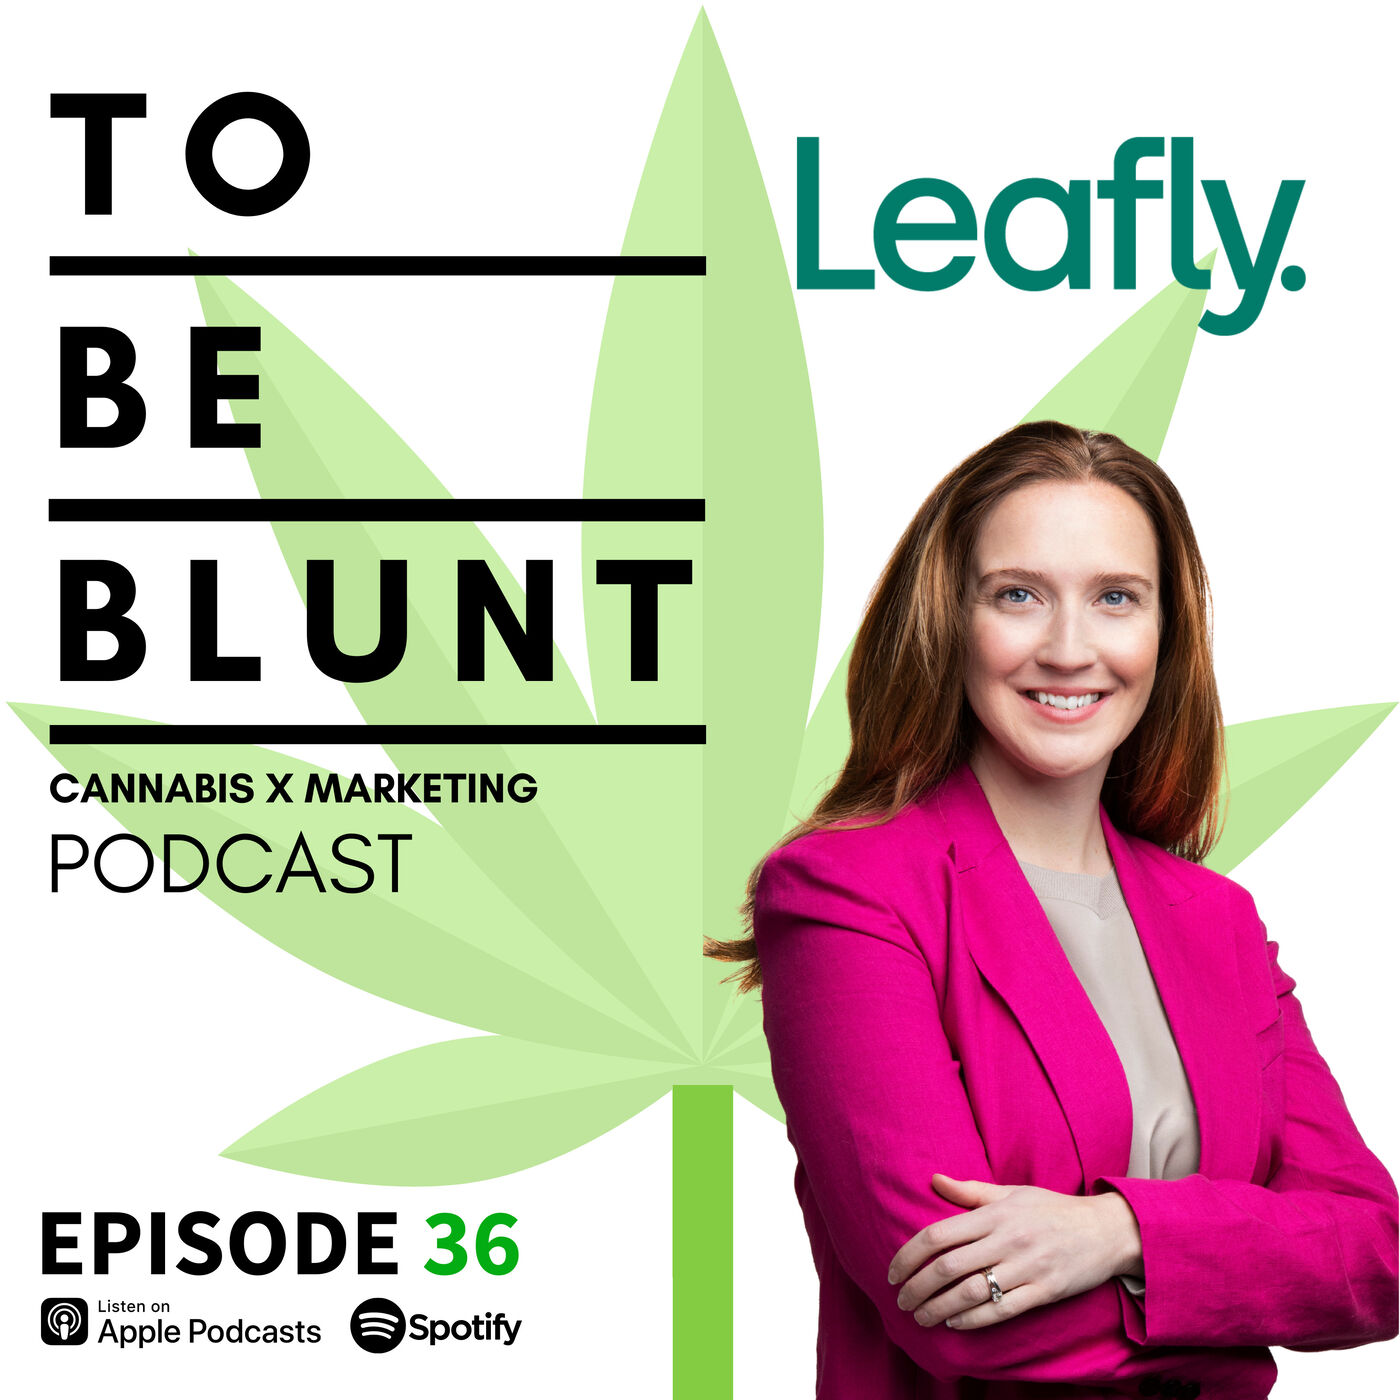 036 Laura Morarity, SVP Marketing & Communications at Leafly